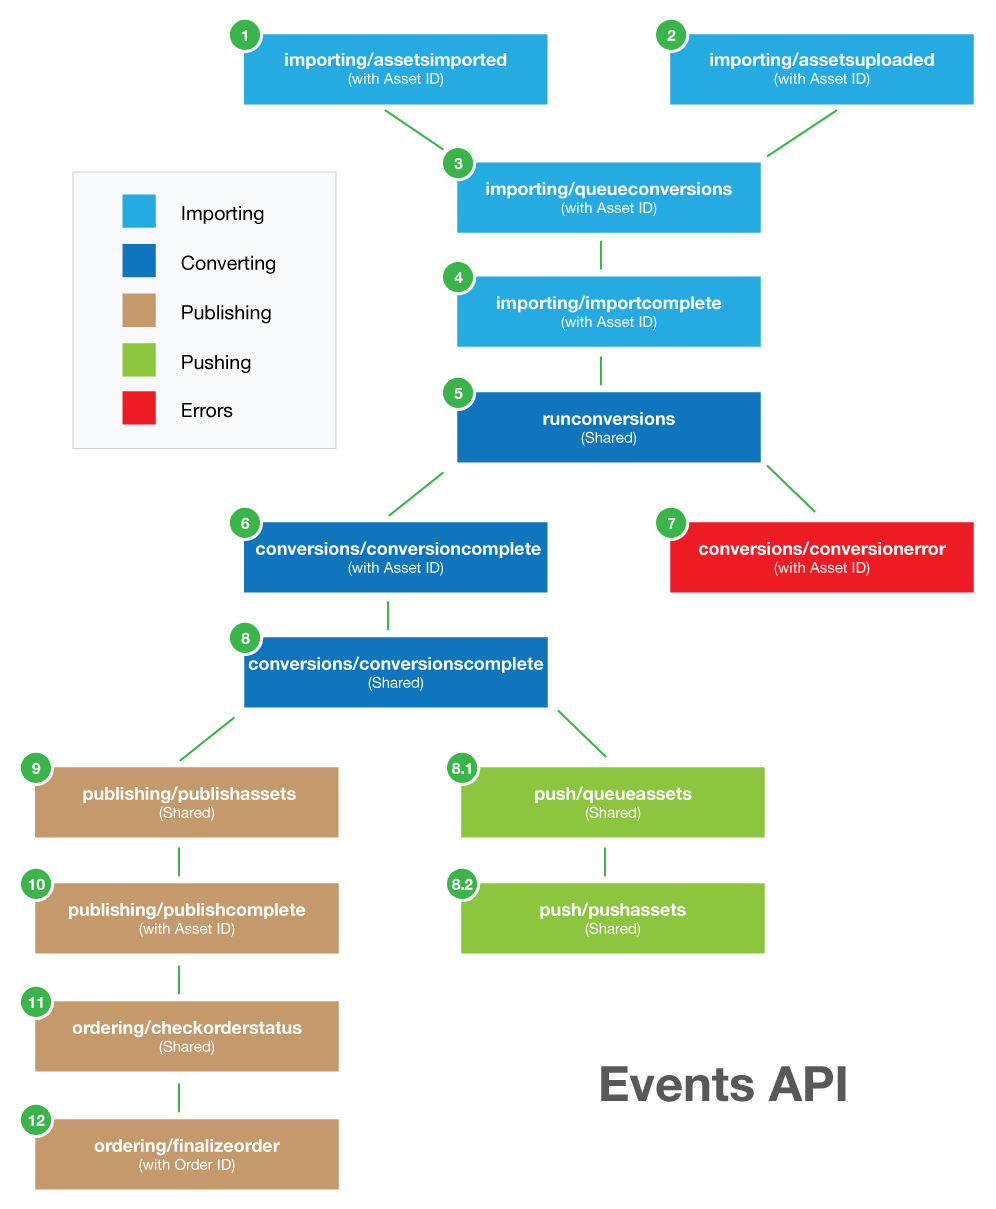 Events_API